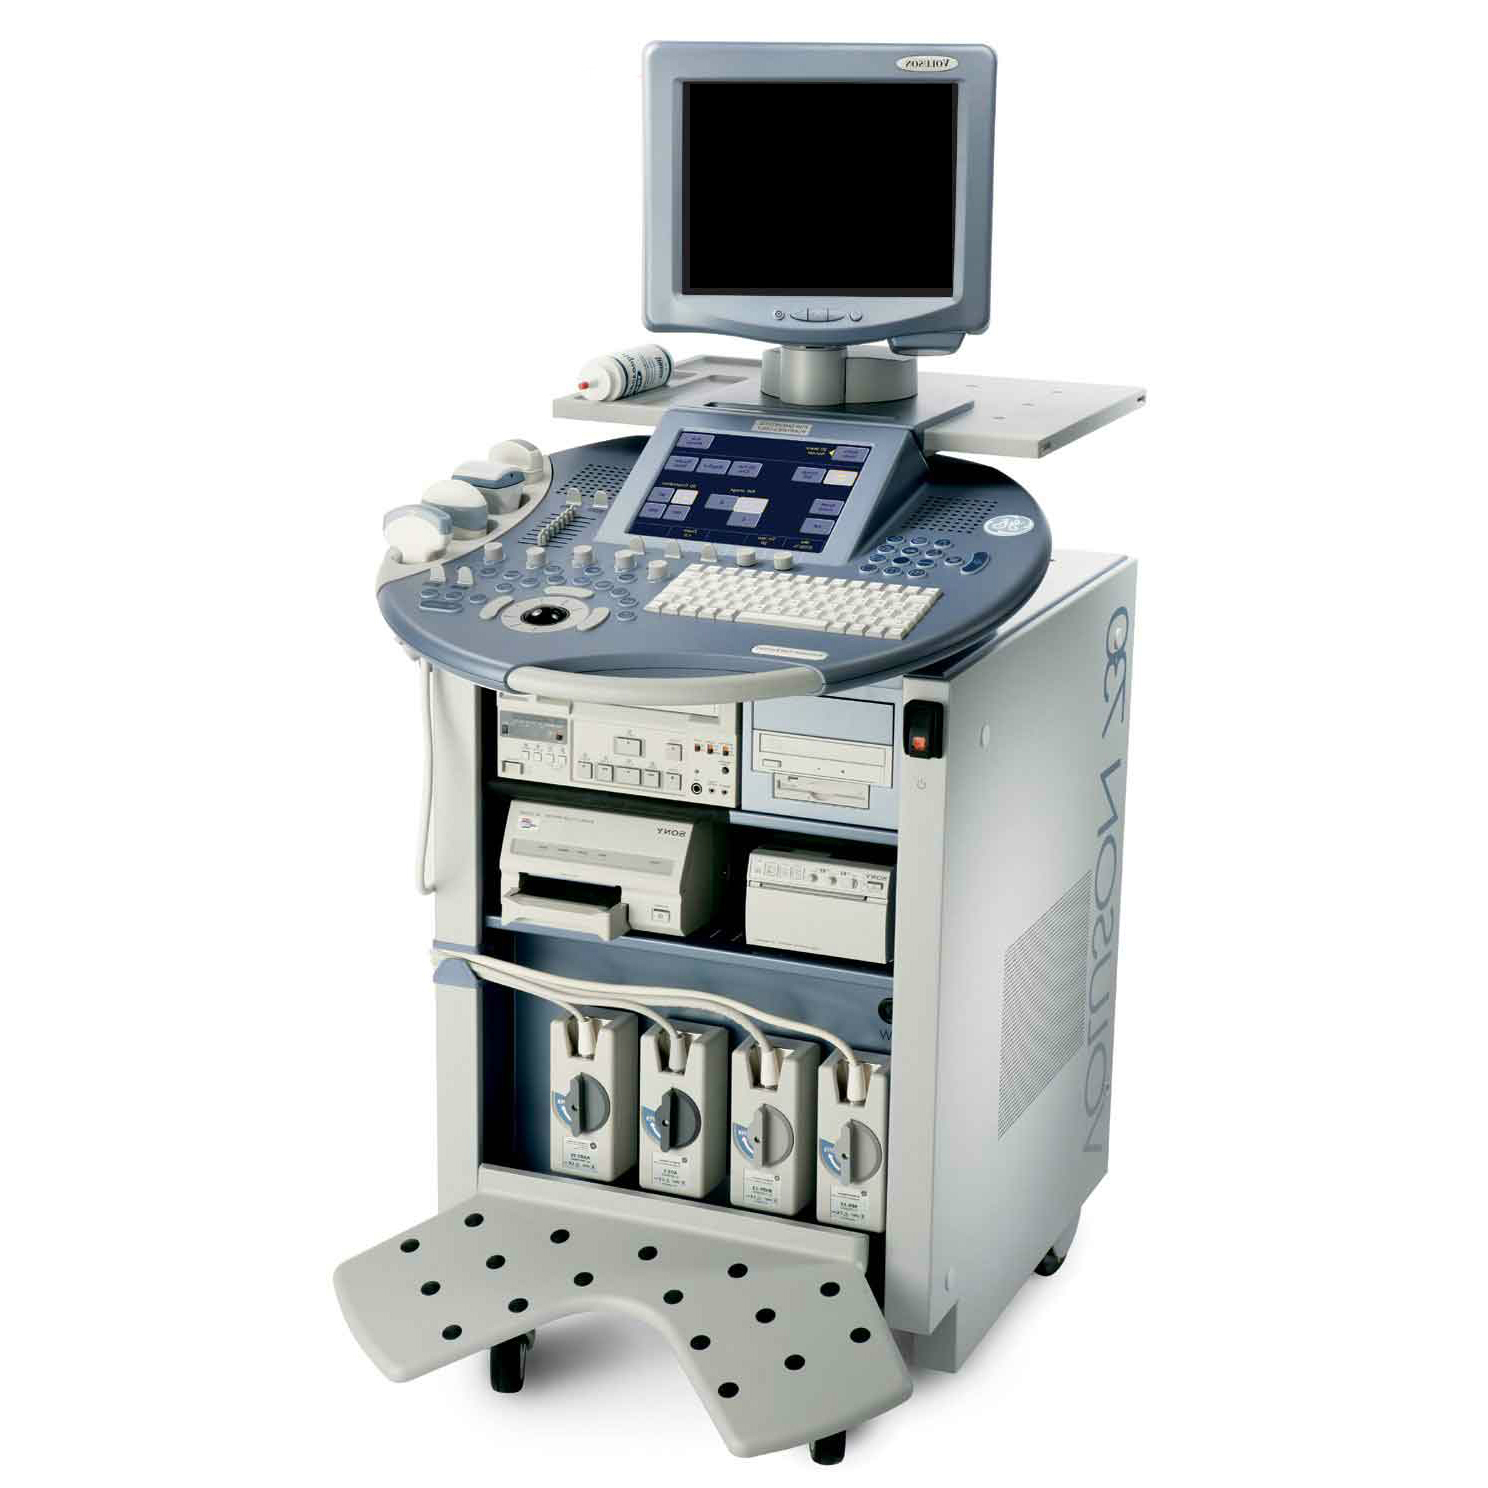 GE Voluson 730 Pro For Sale From Providian Medical